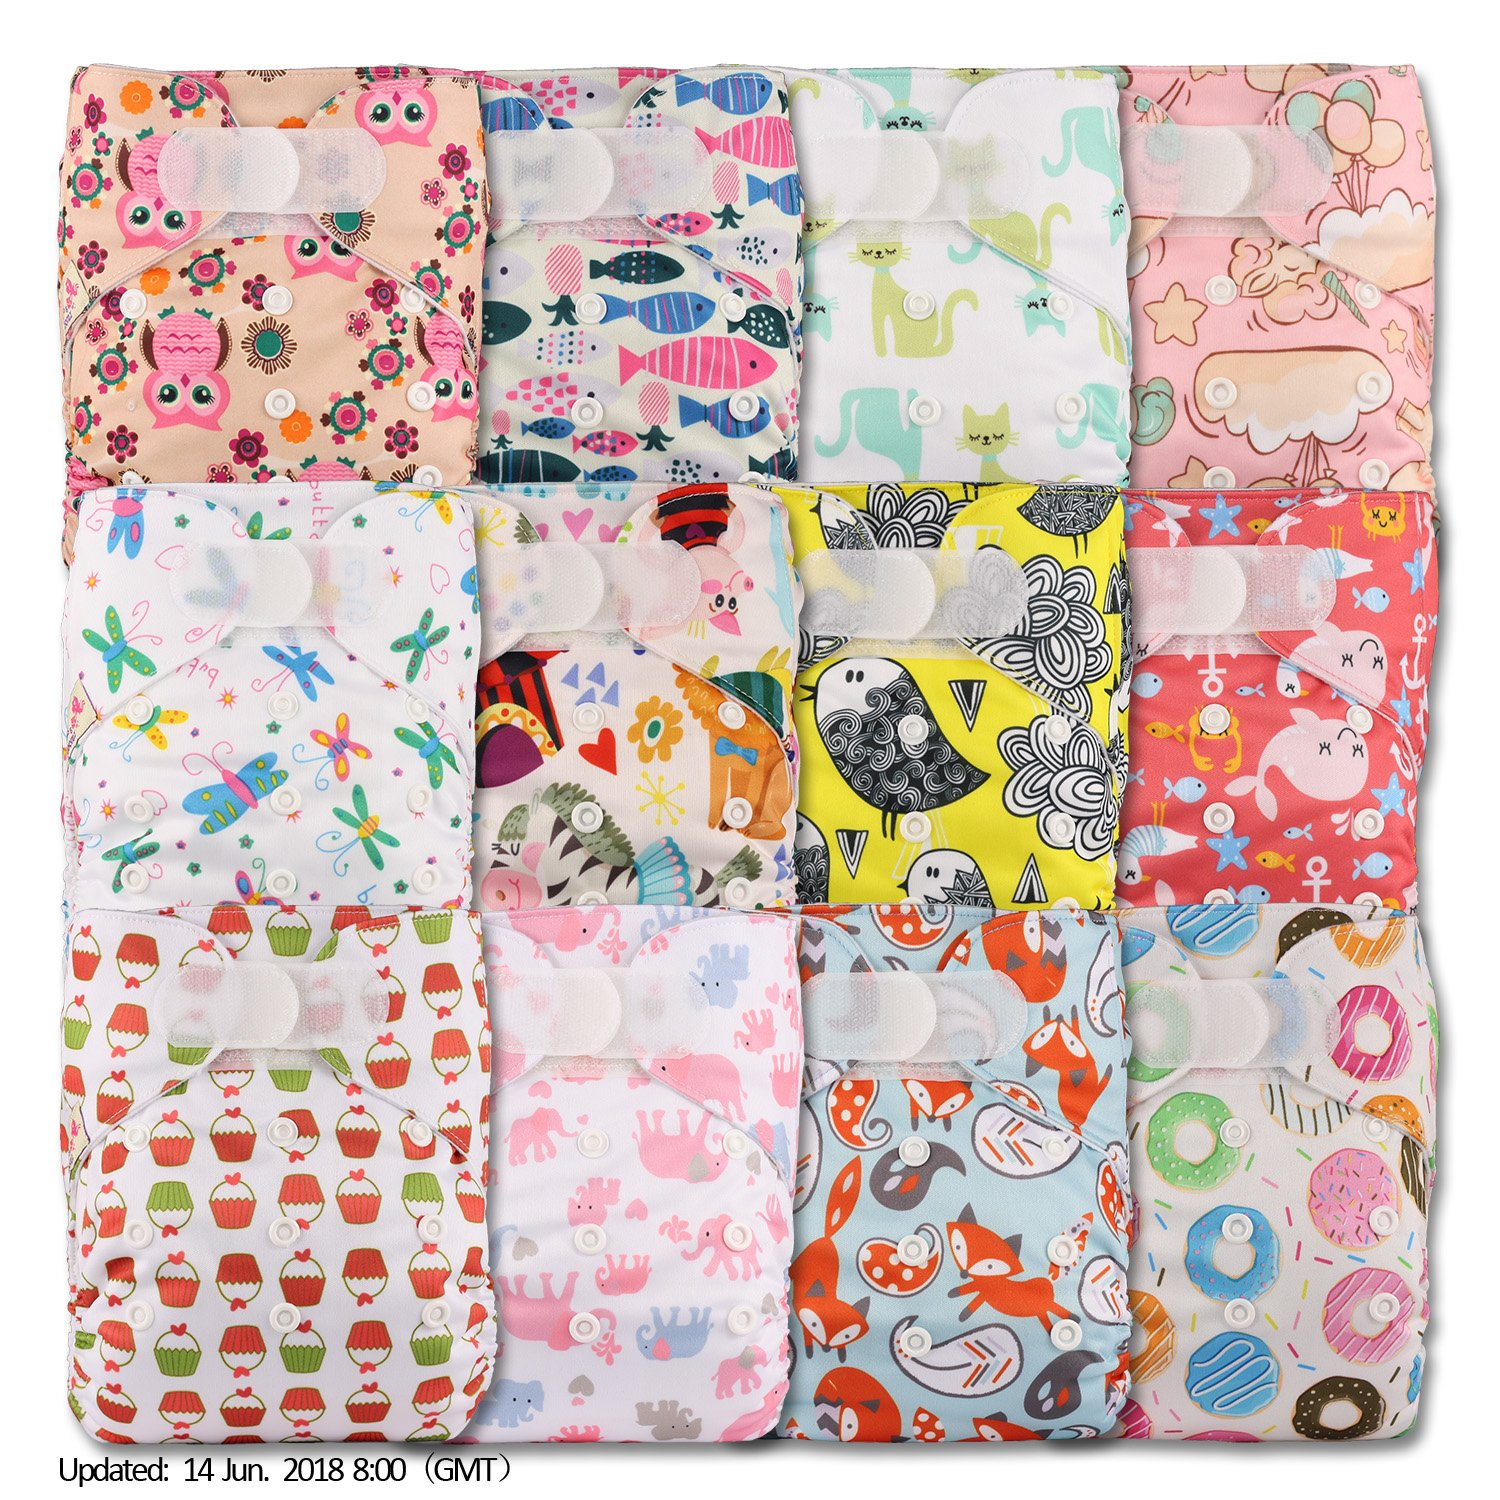 Littles & Bloomz, Reusable Pocket Cloth Nappy, Fastener: Hook-Loop, Set of 12, Patterns 1201, Without Insert